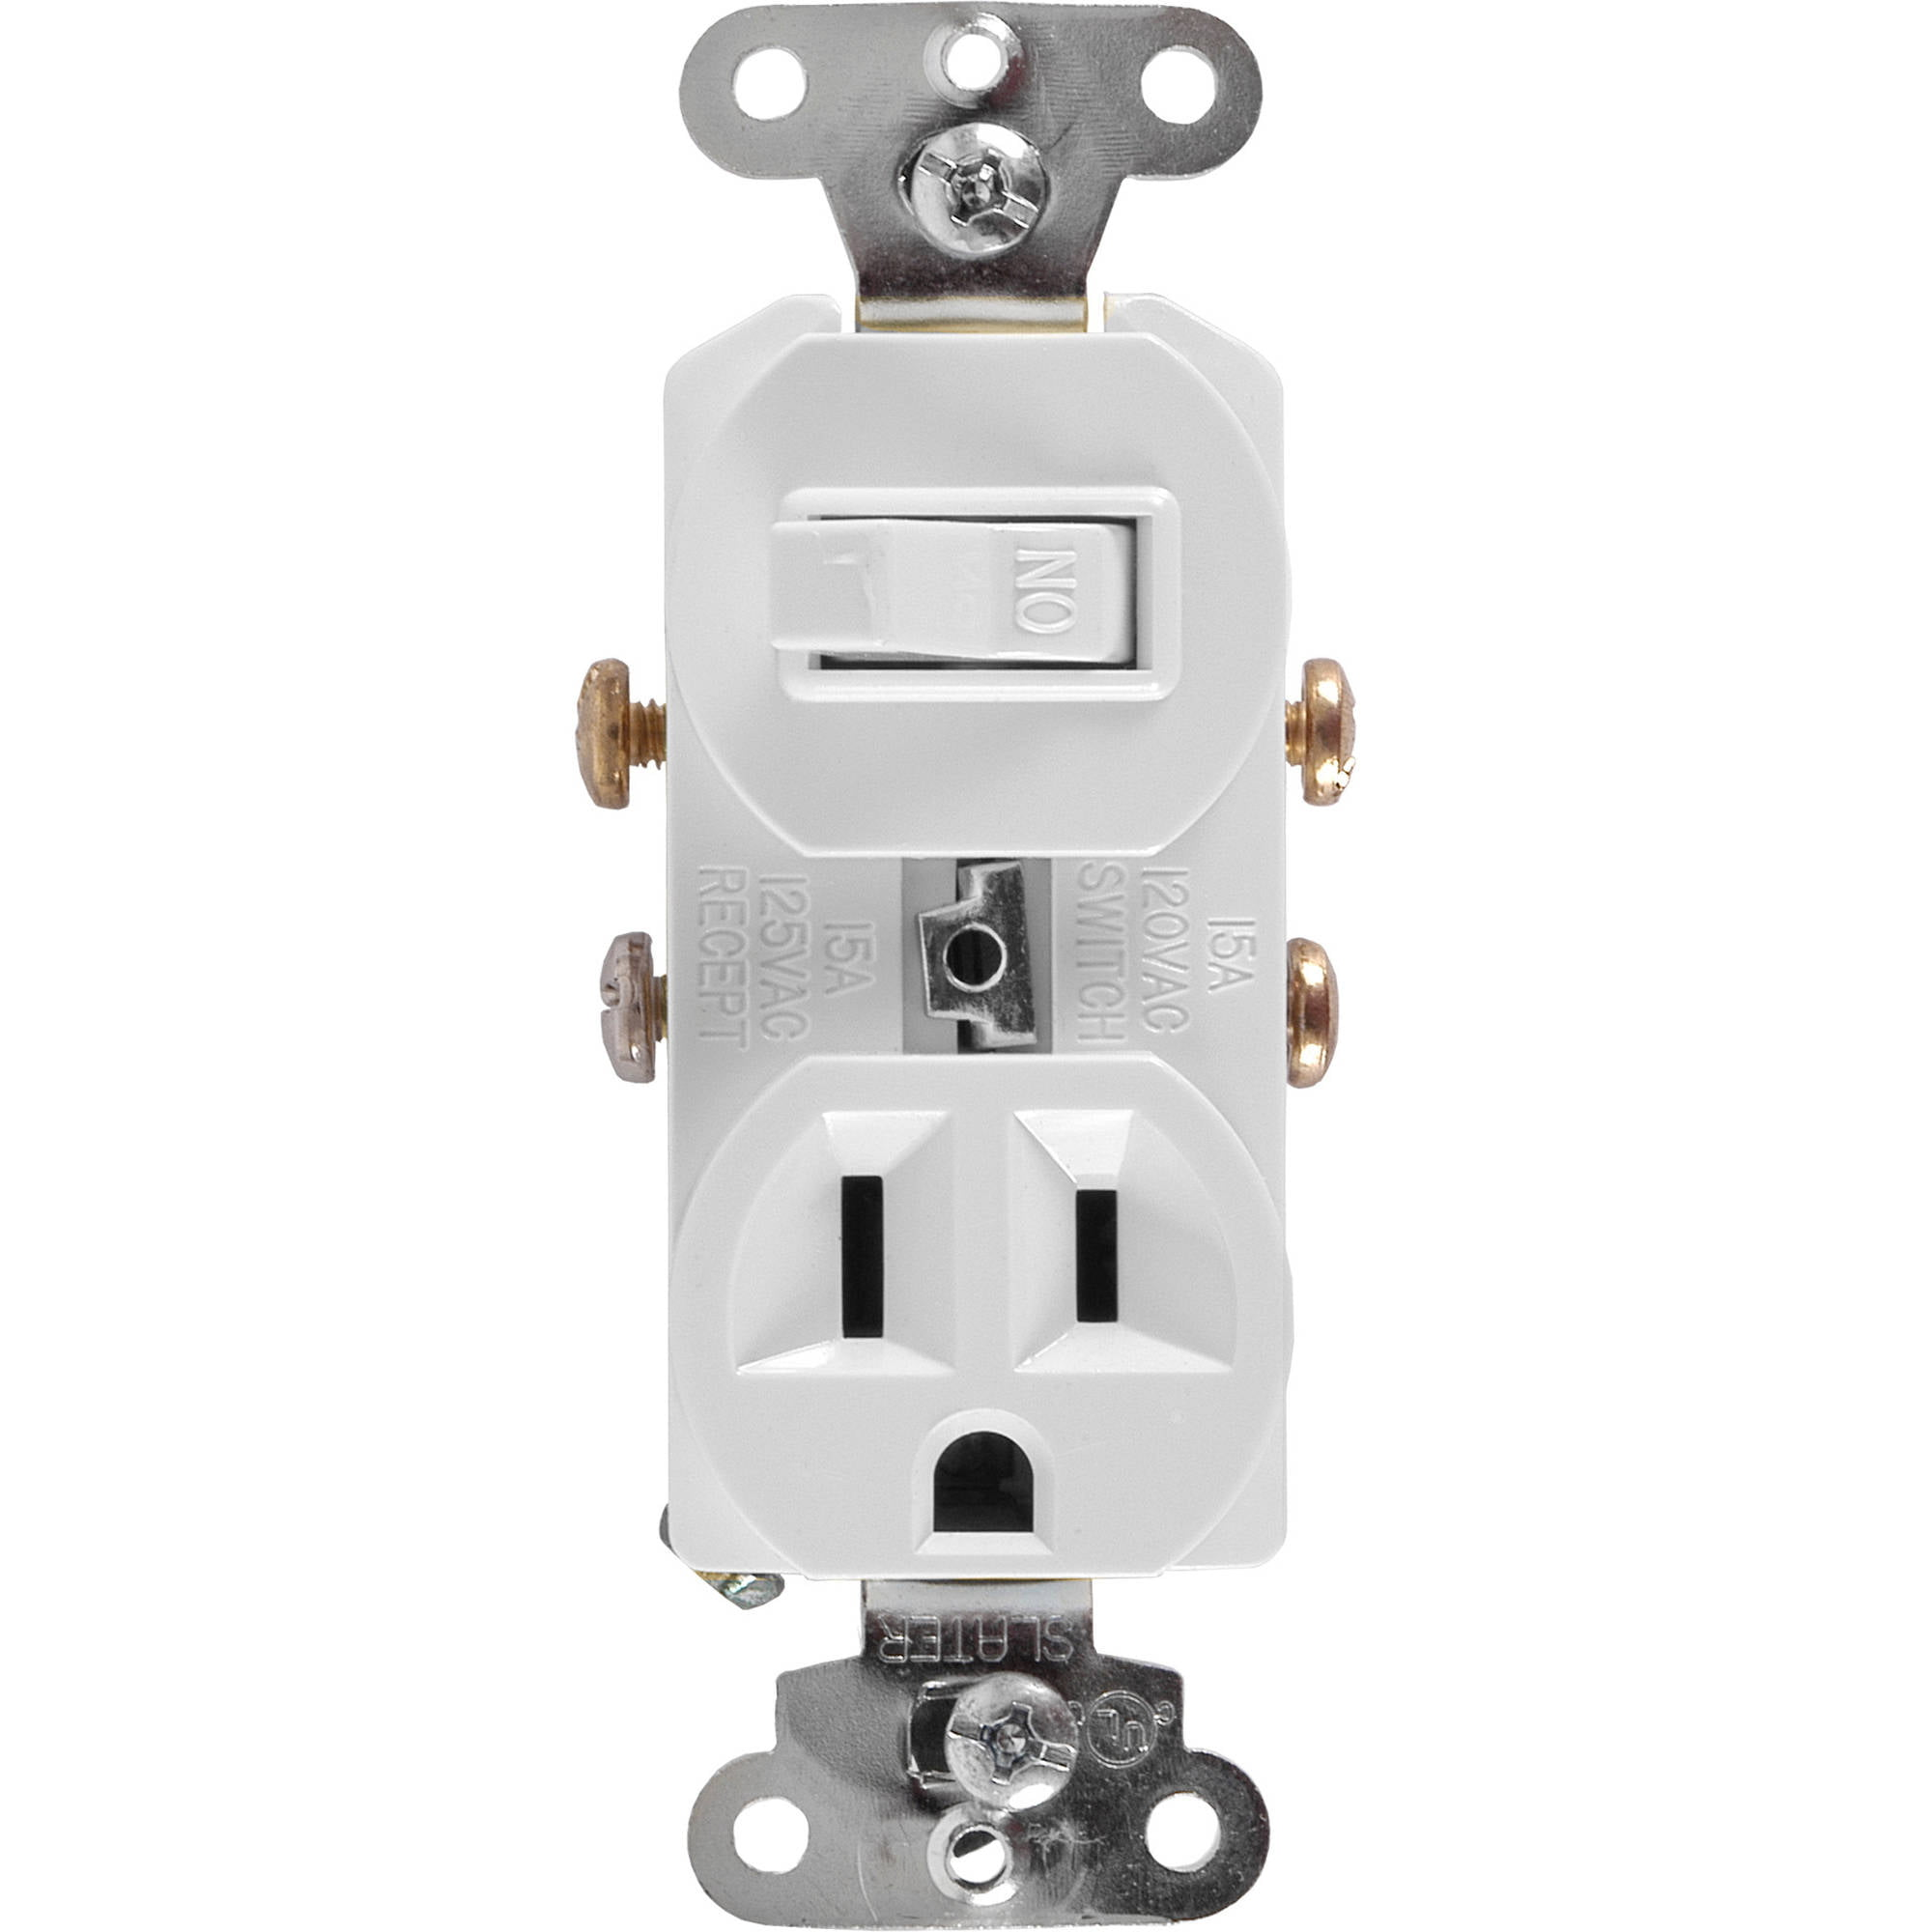 GE Wall Switch and Outlet Combo, White - Walmart.com